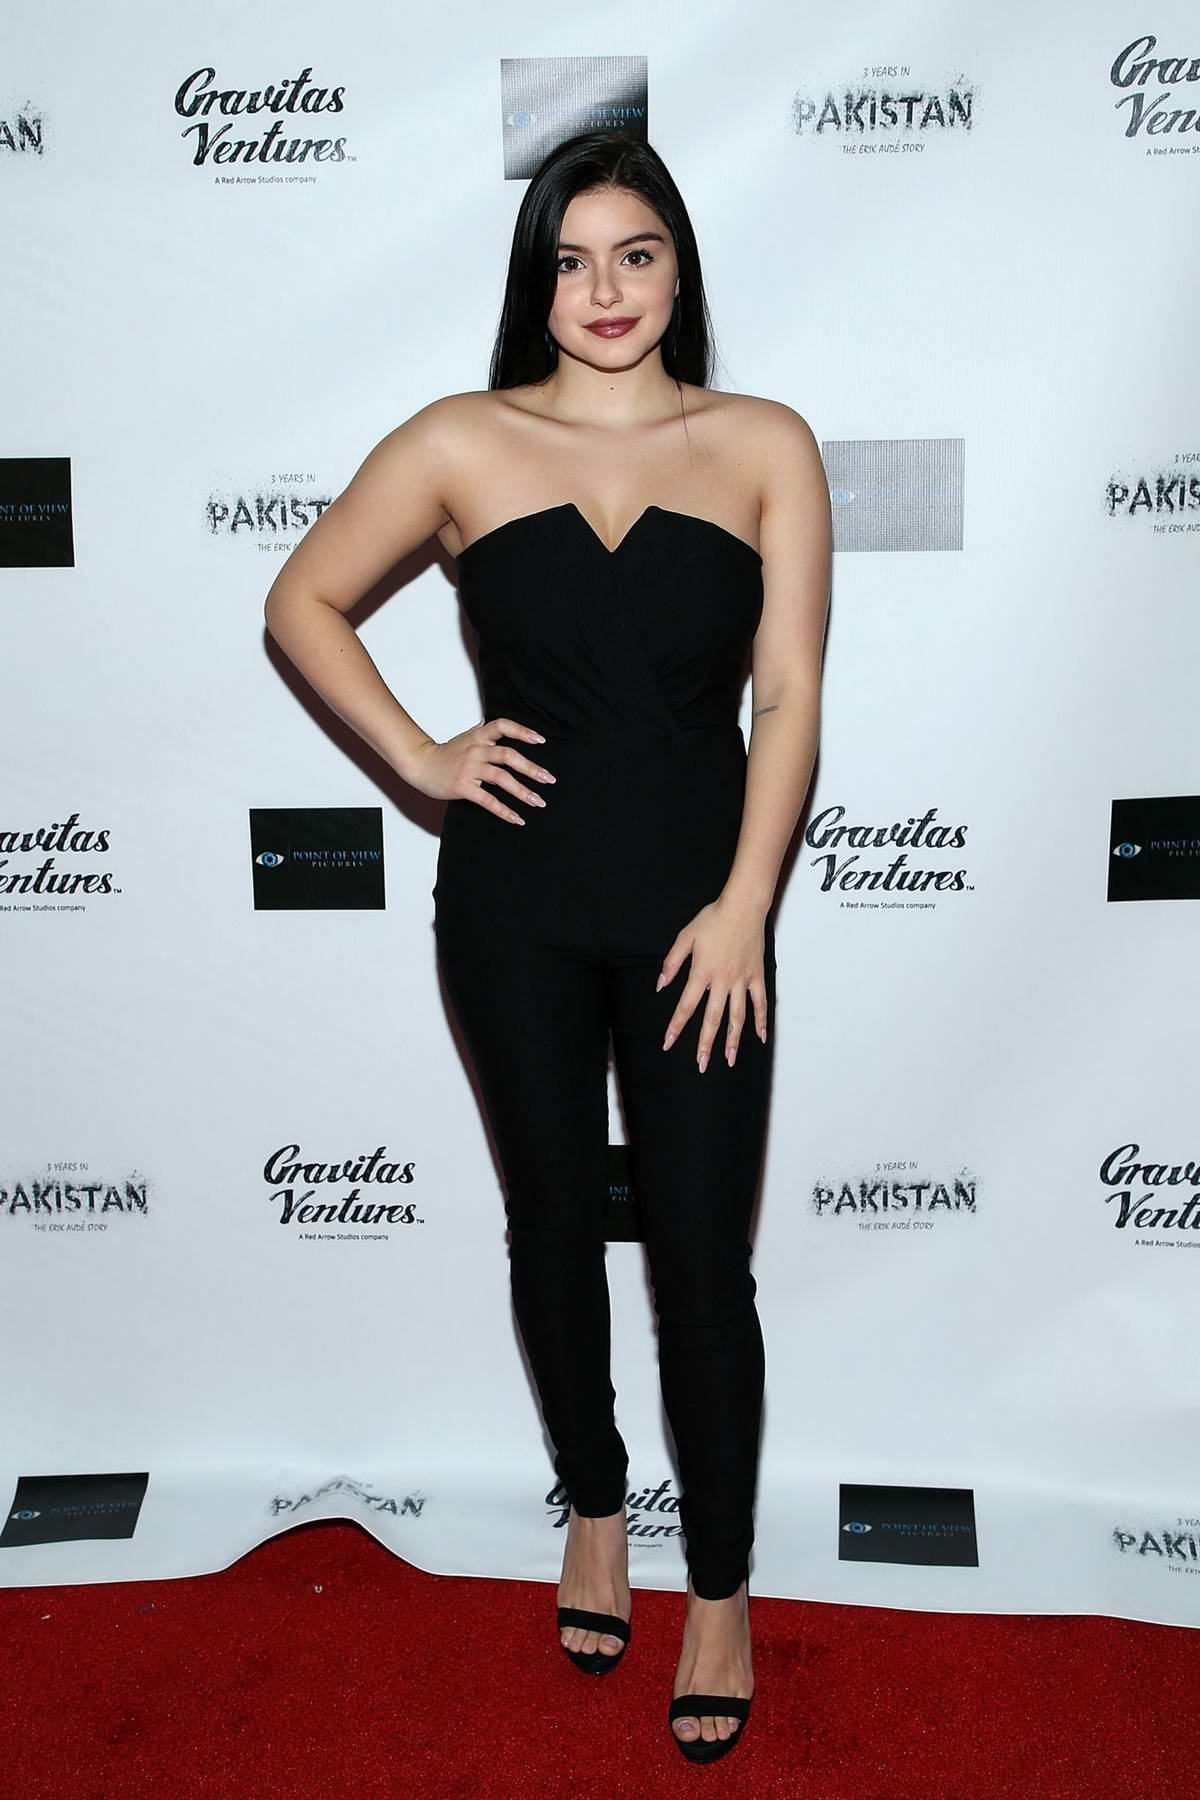 Ariel Winter attends the premiere of '3 Years In Pakistan: The Erik Aude Story' in Hollywood, California